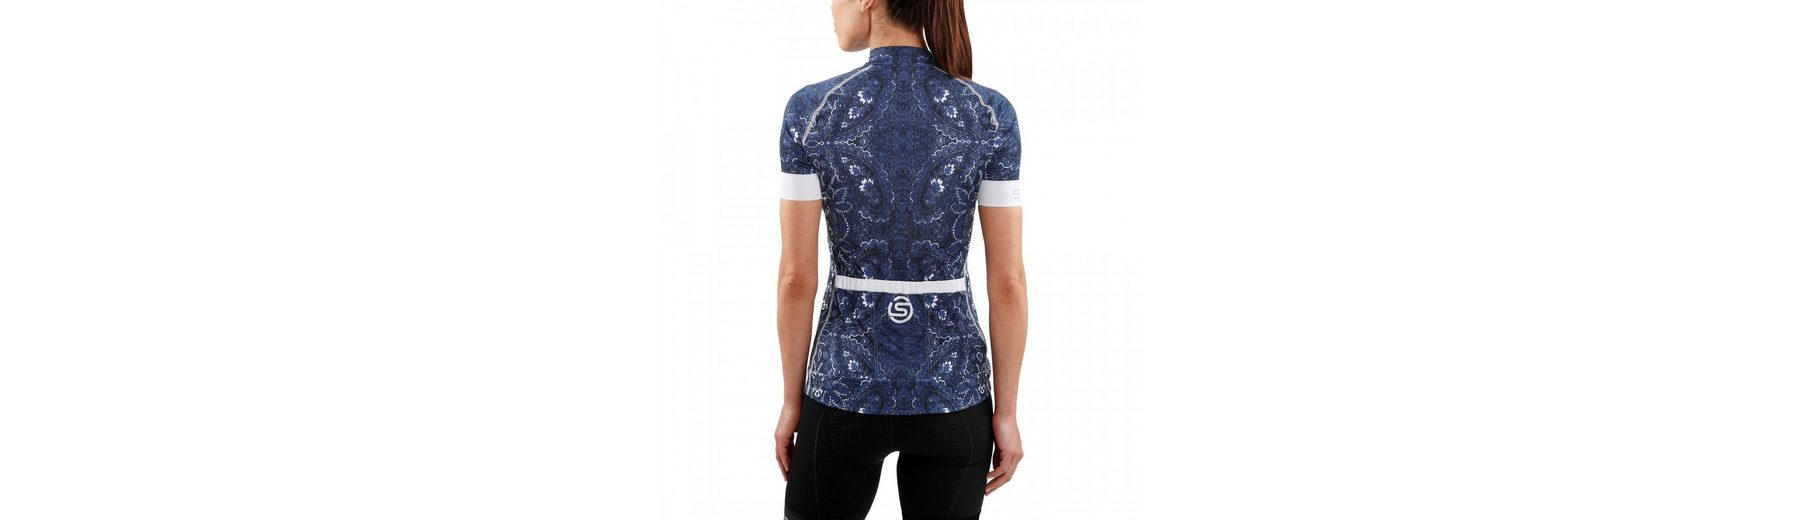 Jersey Skins SS Shirt Zip Full T Classic Women Cycle qxx1wP4AX